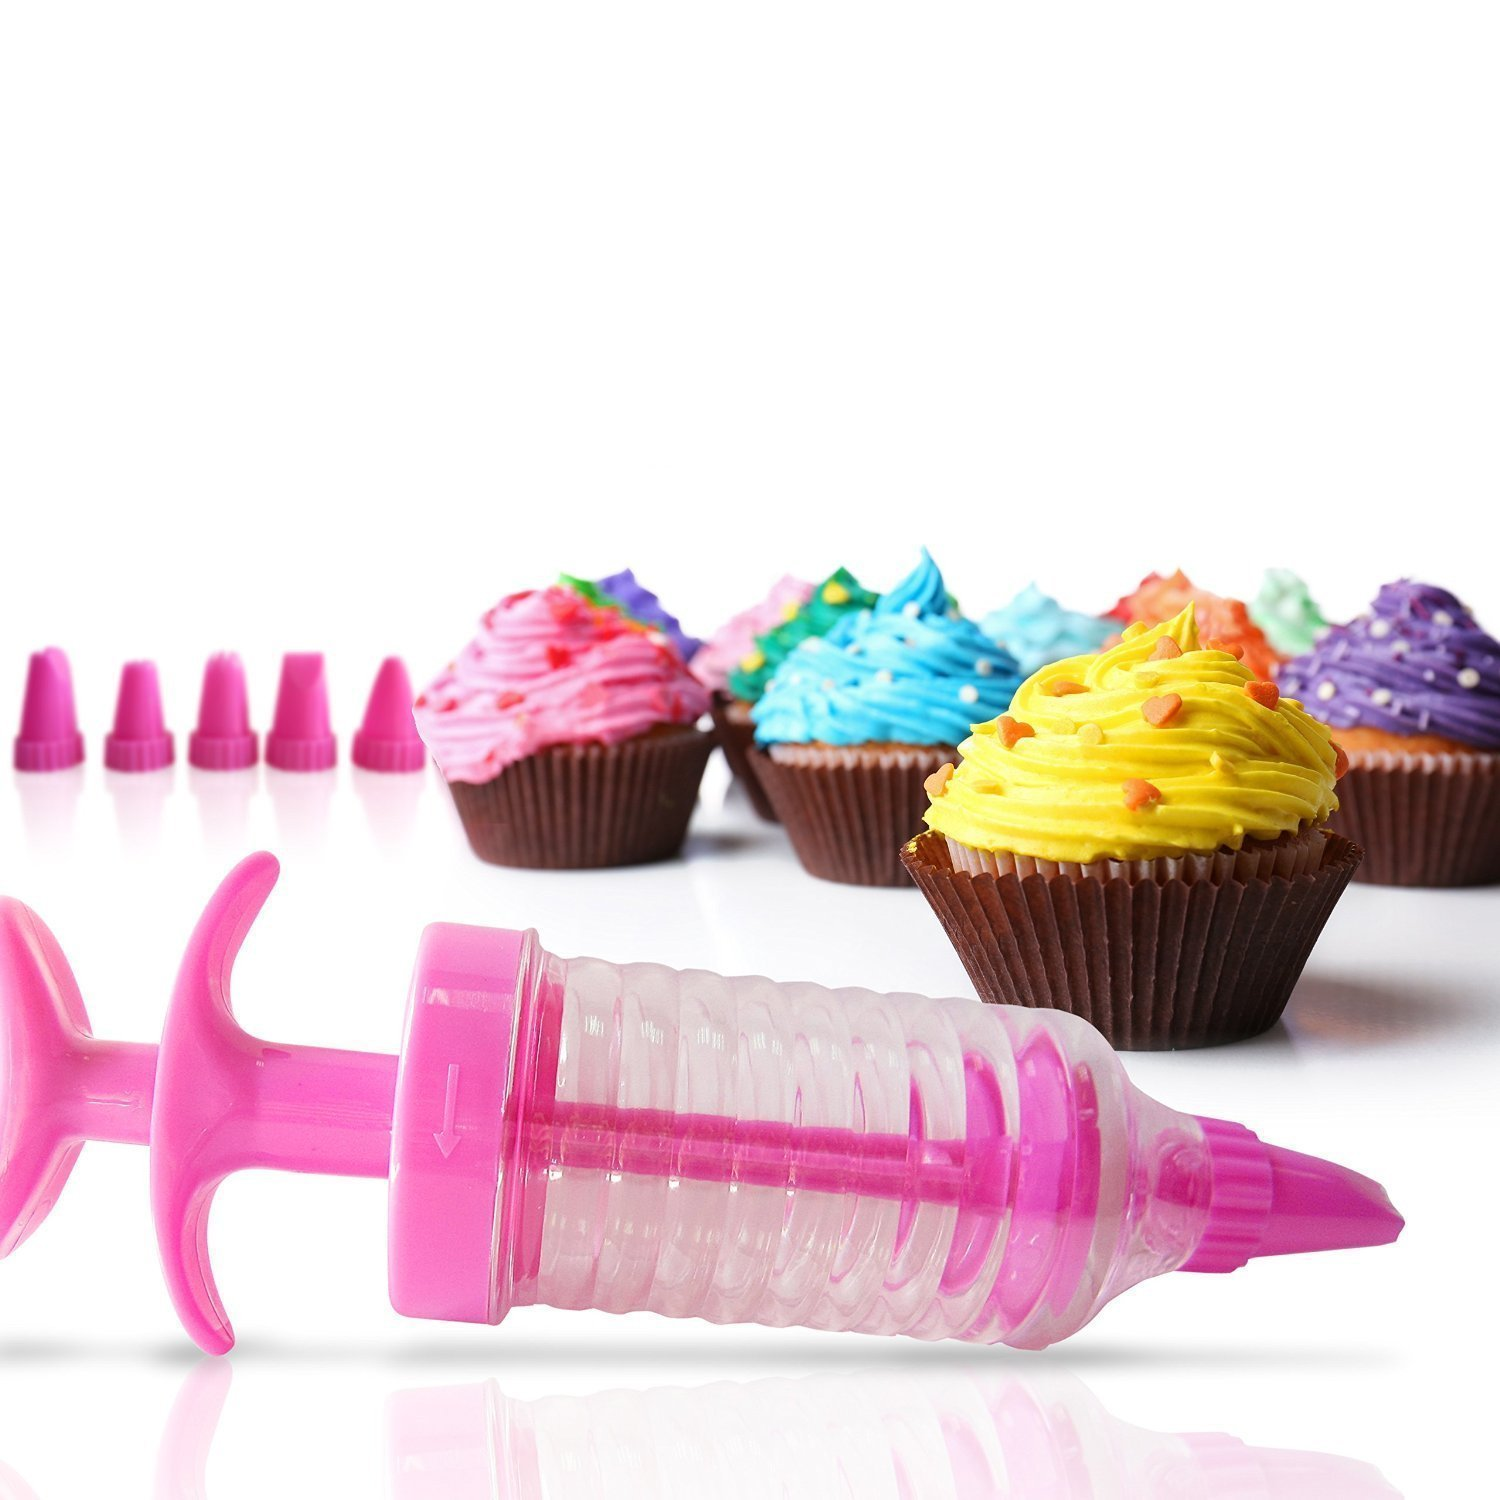 Amazon Cake Decorating Kit Set of 9 Icing Tips for Baking